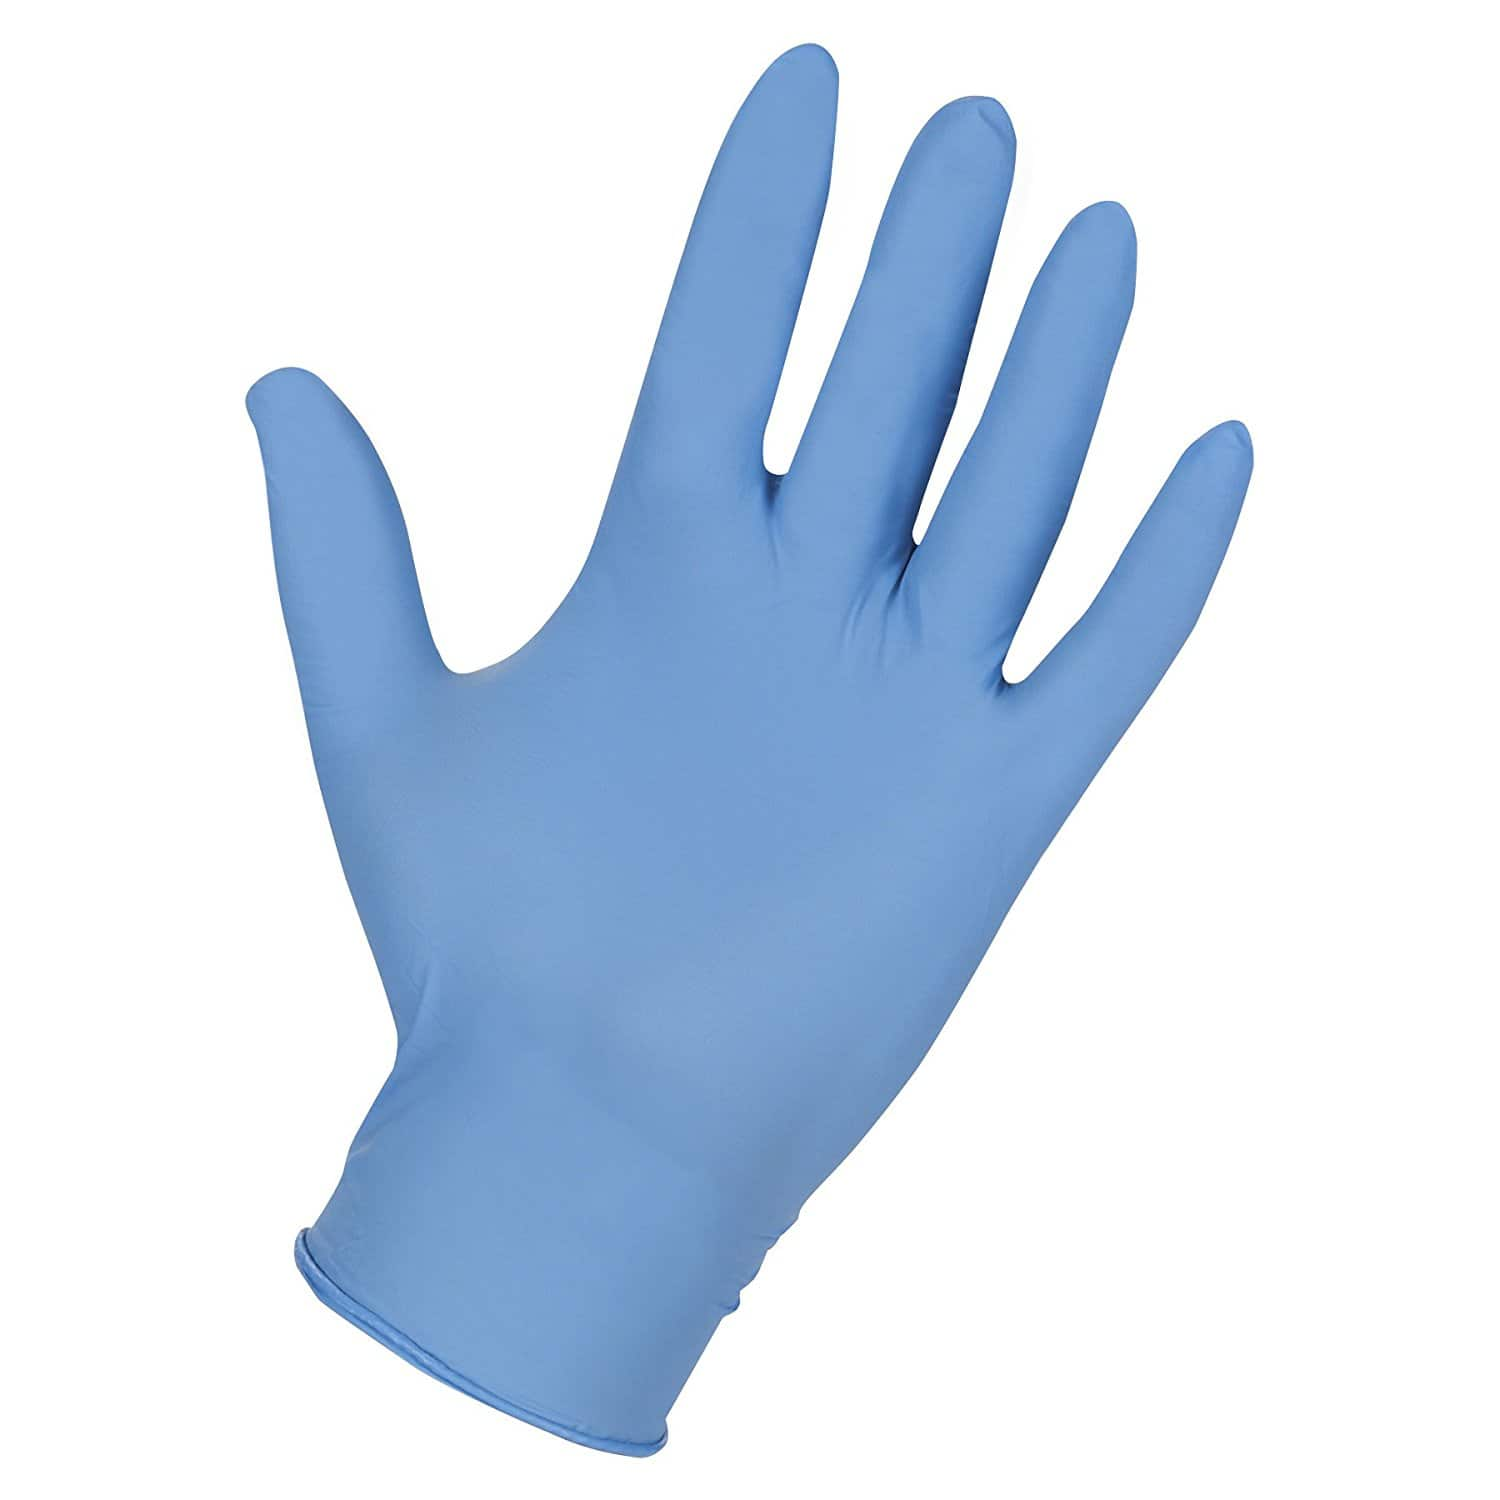 100ct Genuine Joe XL Nitrile Gloves (Light Blue) for $1.31 w/ S&S + Free F&H